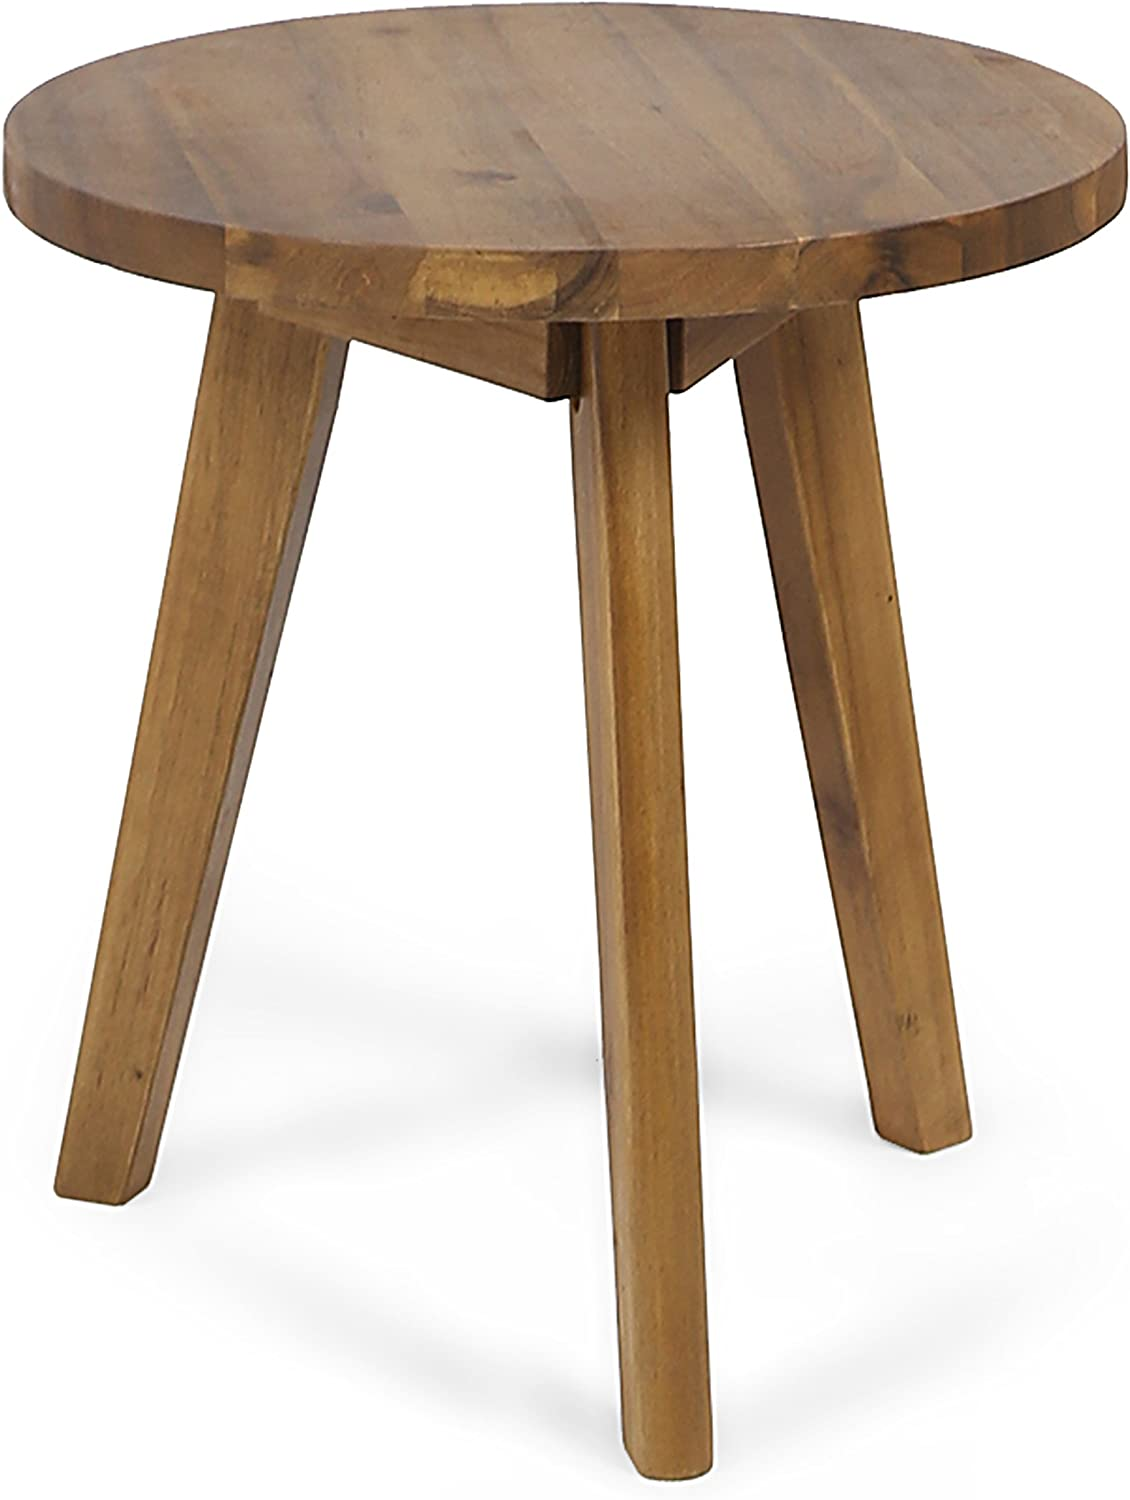 Christopher Knight Home 305360 Gino Outdoor Acacia Wood Side Table, Natural Finish